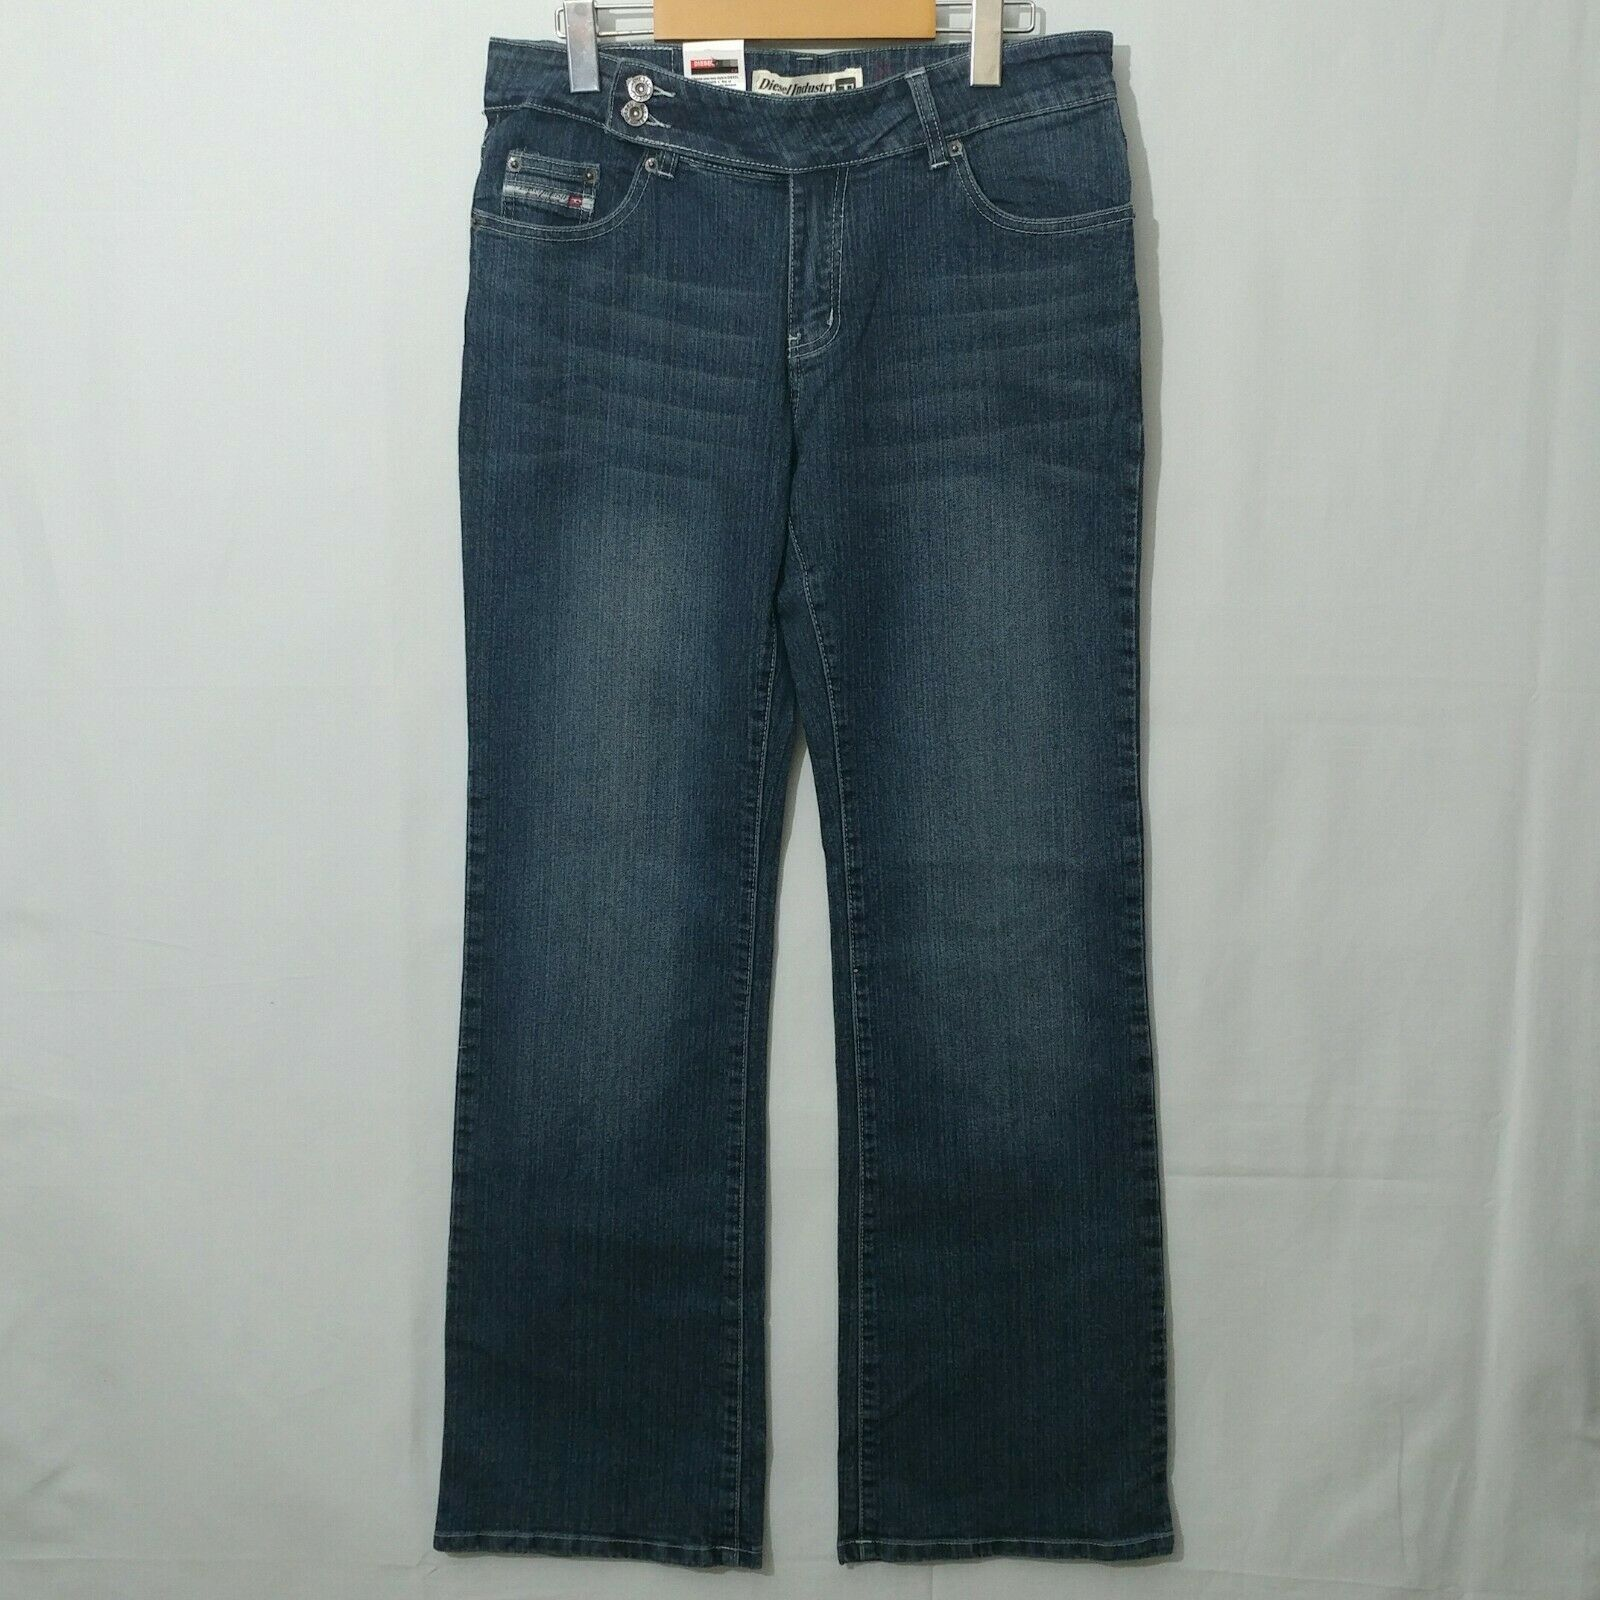 New DIESEL Mod Sparker Women's Jeans Distressed Bootcut Size 32 Mid-Rise BNWT